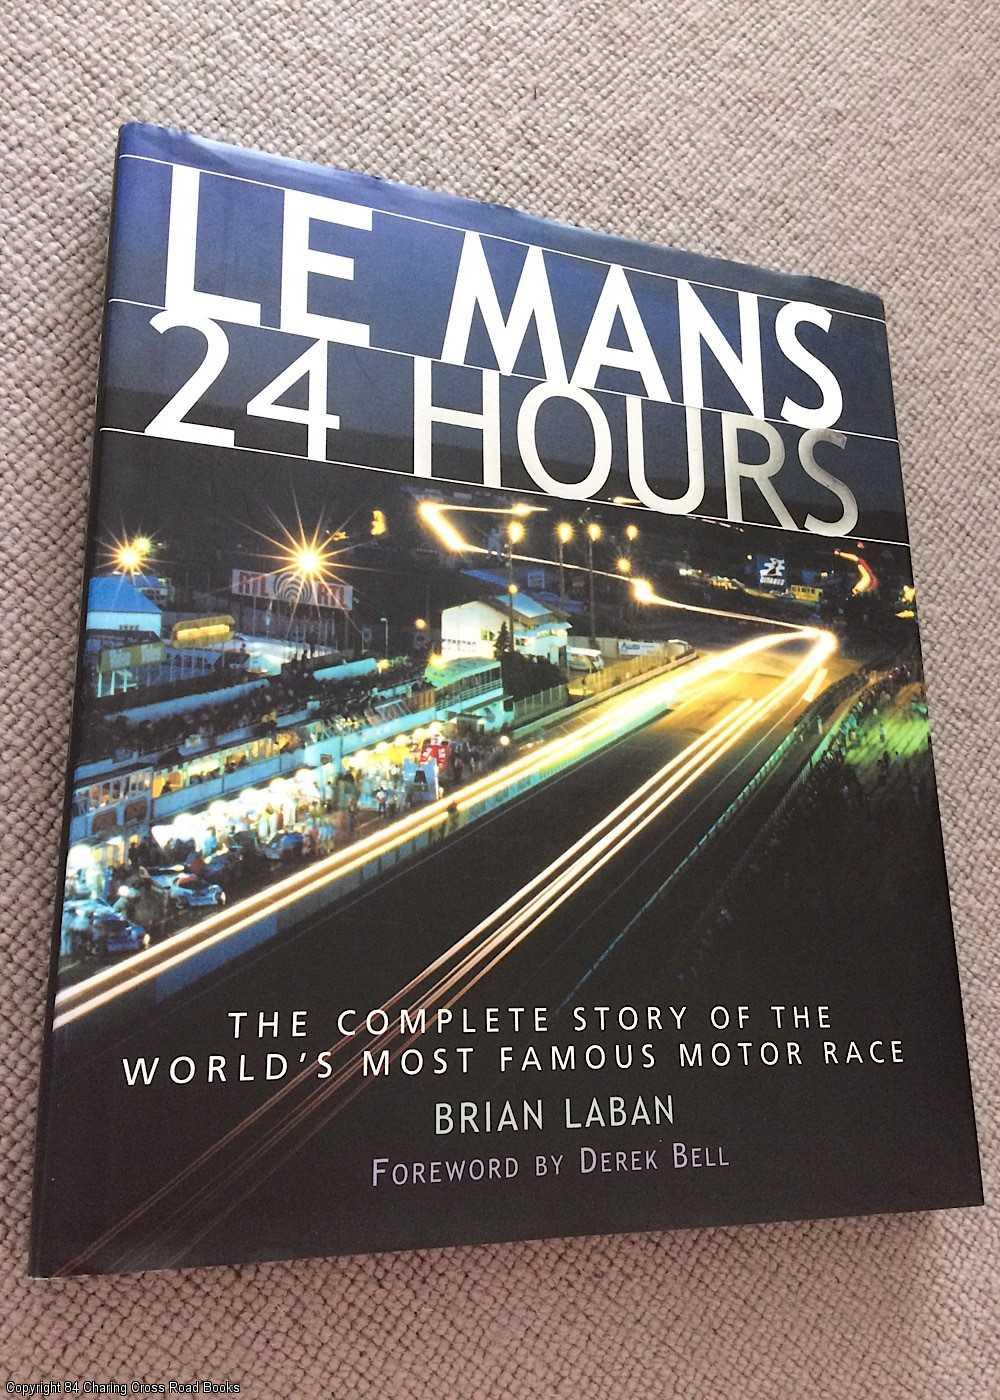 BRIAN LABAN; DEREK BELL (FOREWORD) - Le Mans. 24 Hours: The Complete Story of the World's Most Famous Motor Race